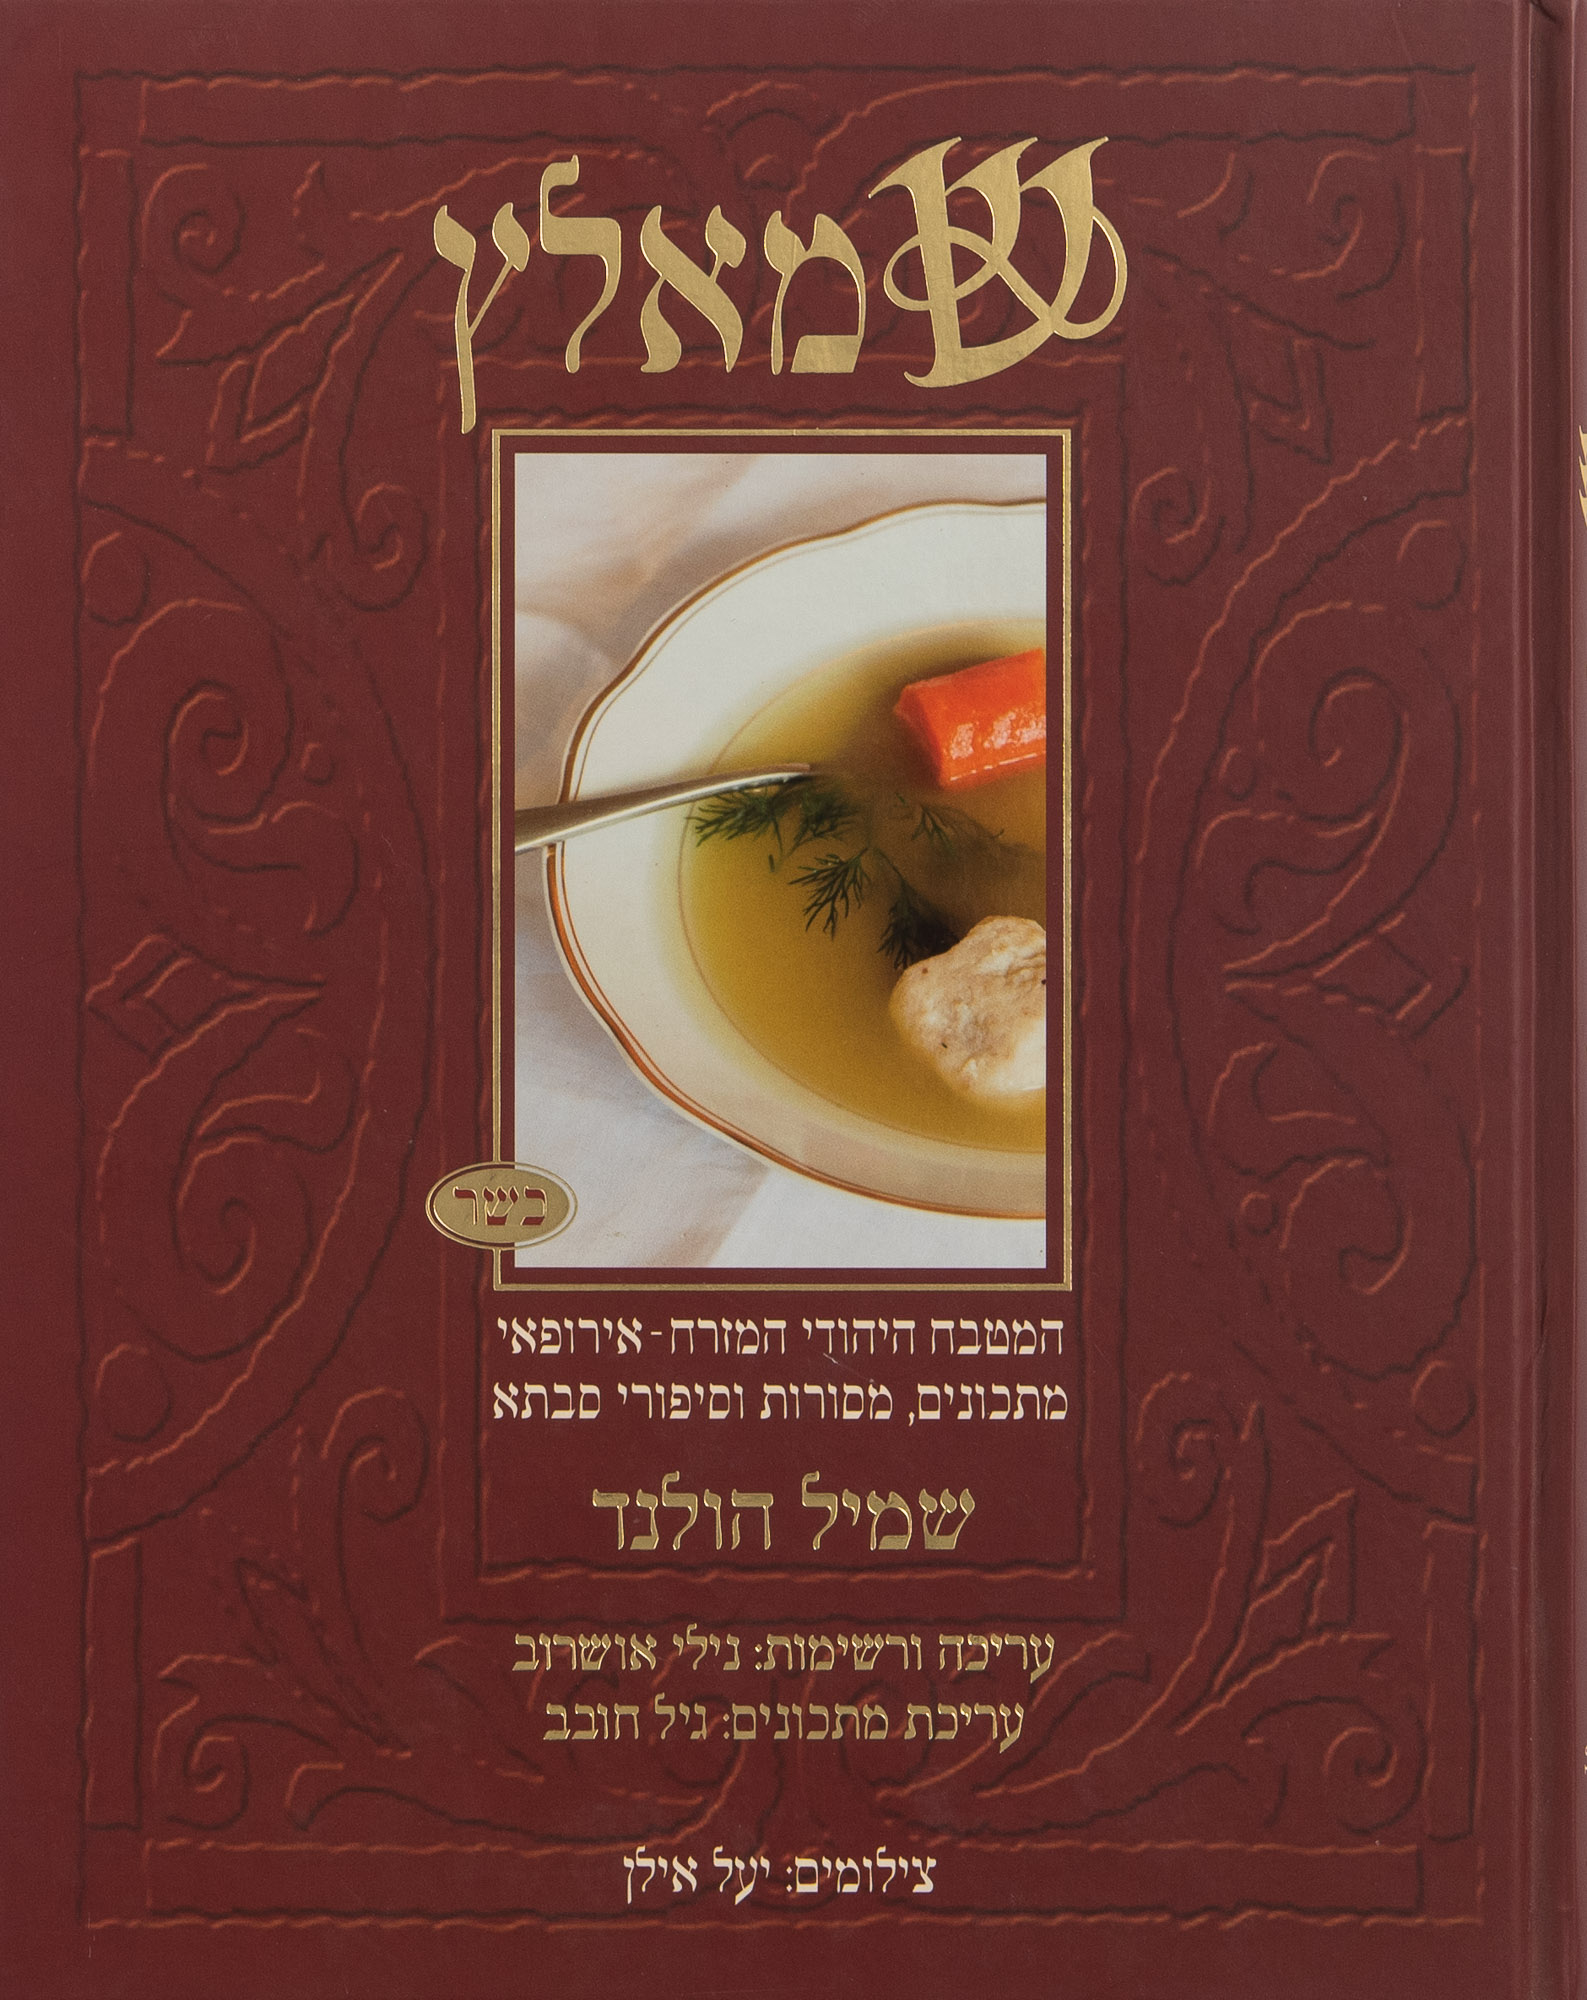 The cover of the Israeli cookbook Shmaltz by Shmil Holland